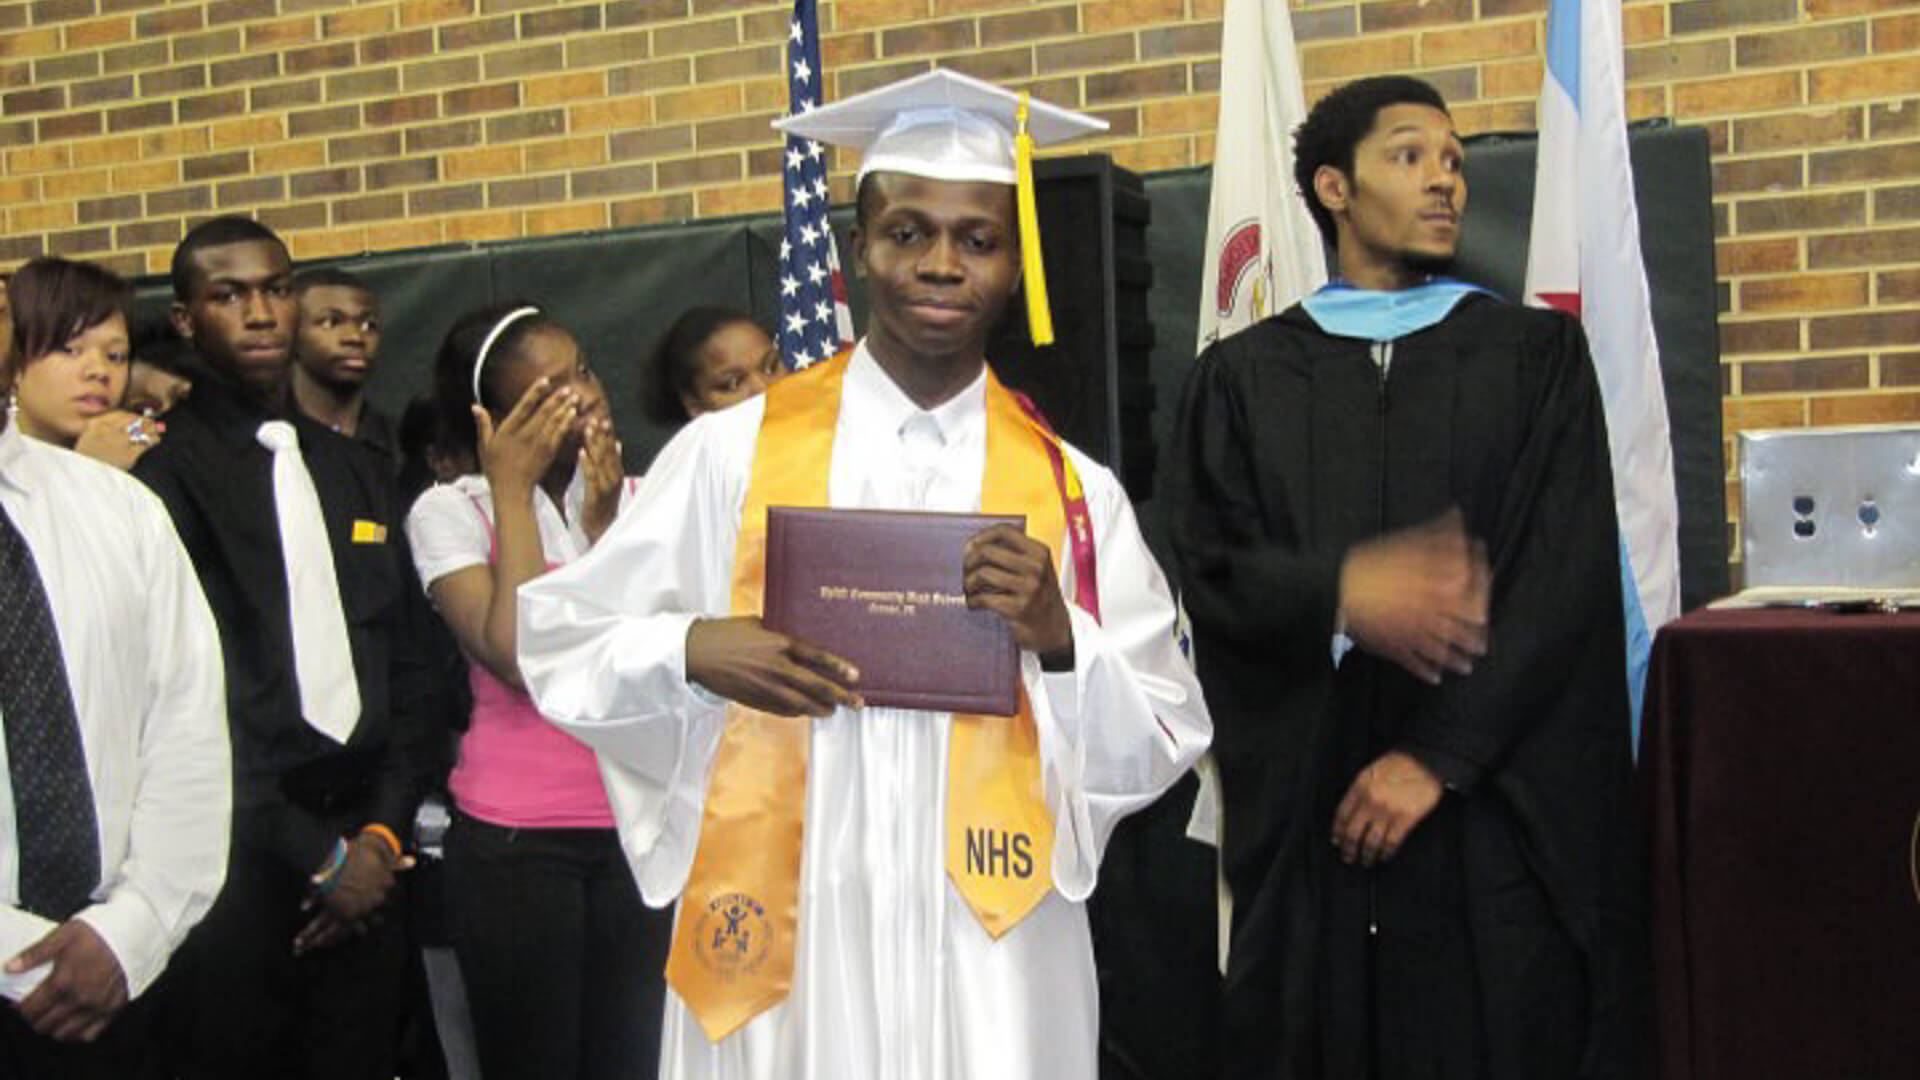 Jeff Badu graduating from National Honor Society